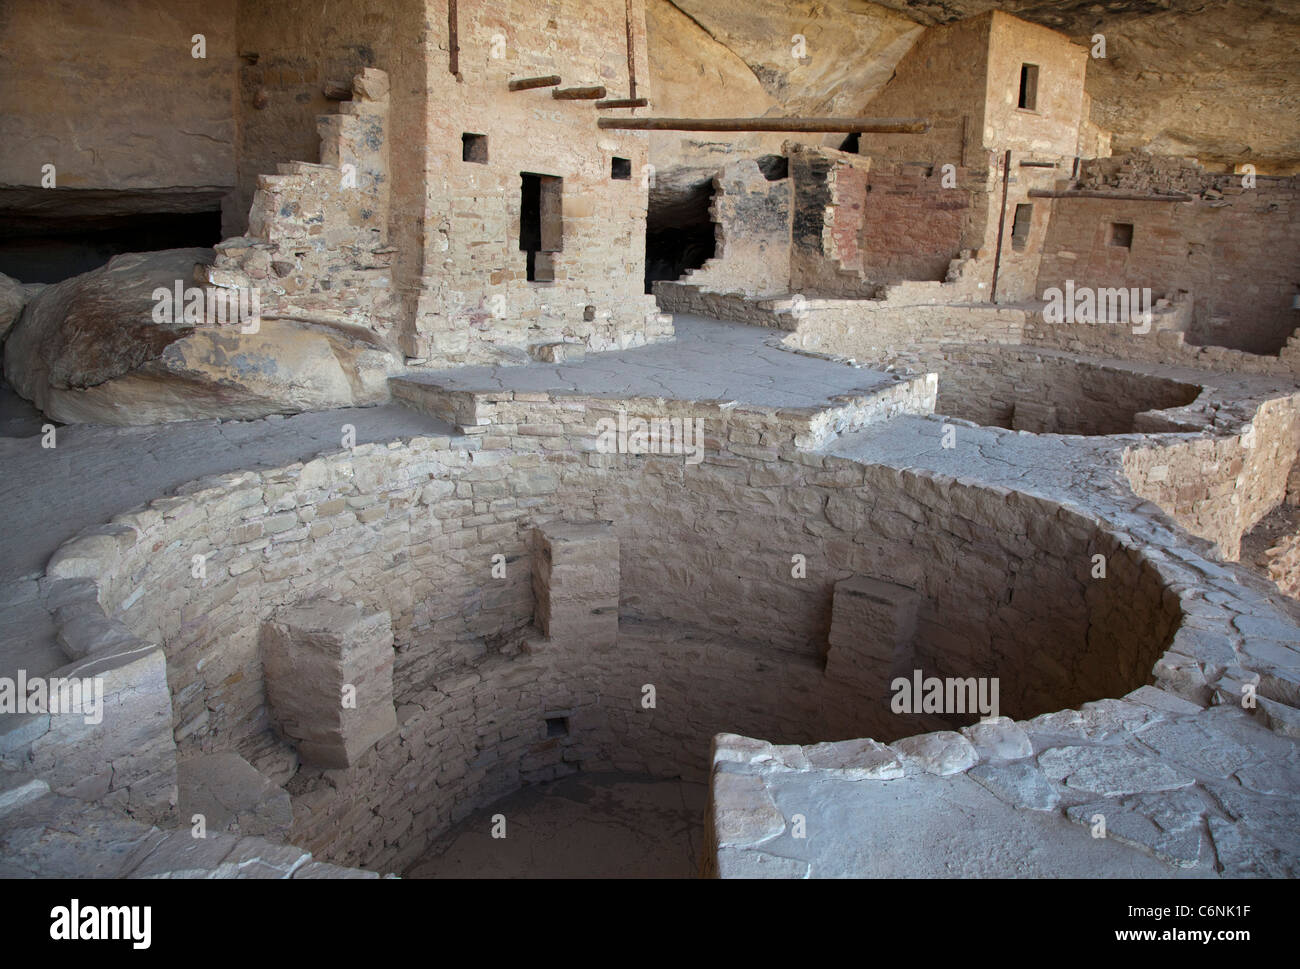 Balcony House cliff dwelling at Mesa Verde National Park - Stock Image